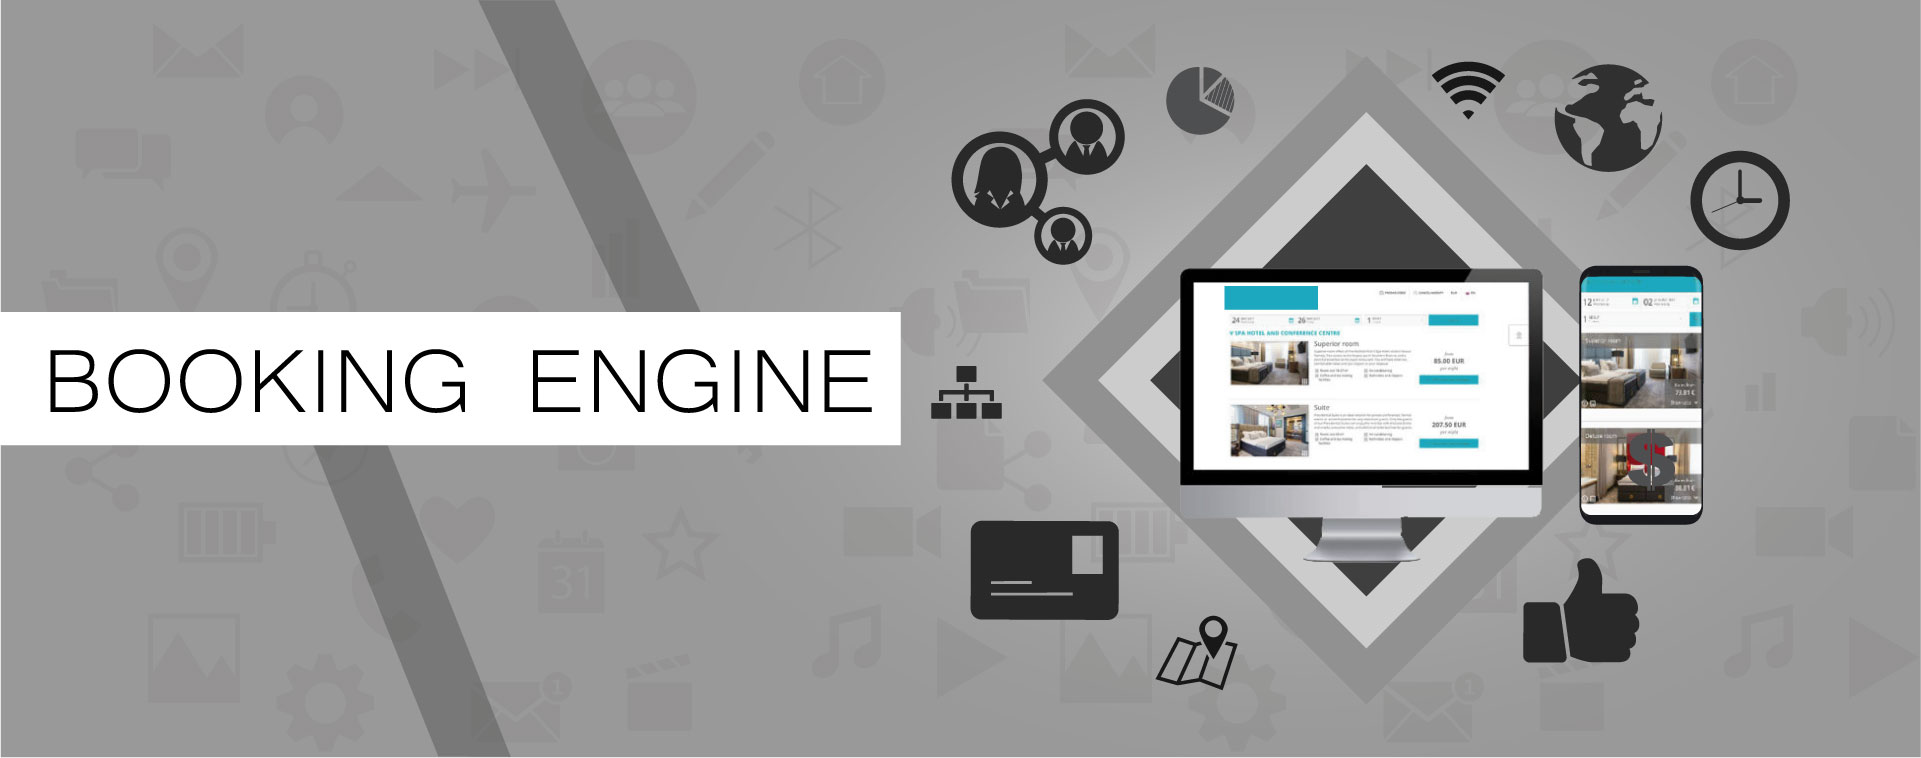 booking_engine